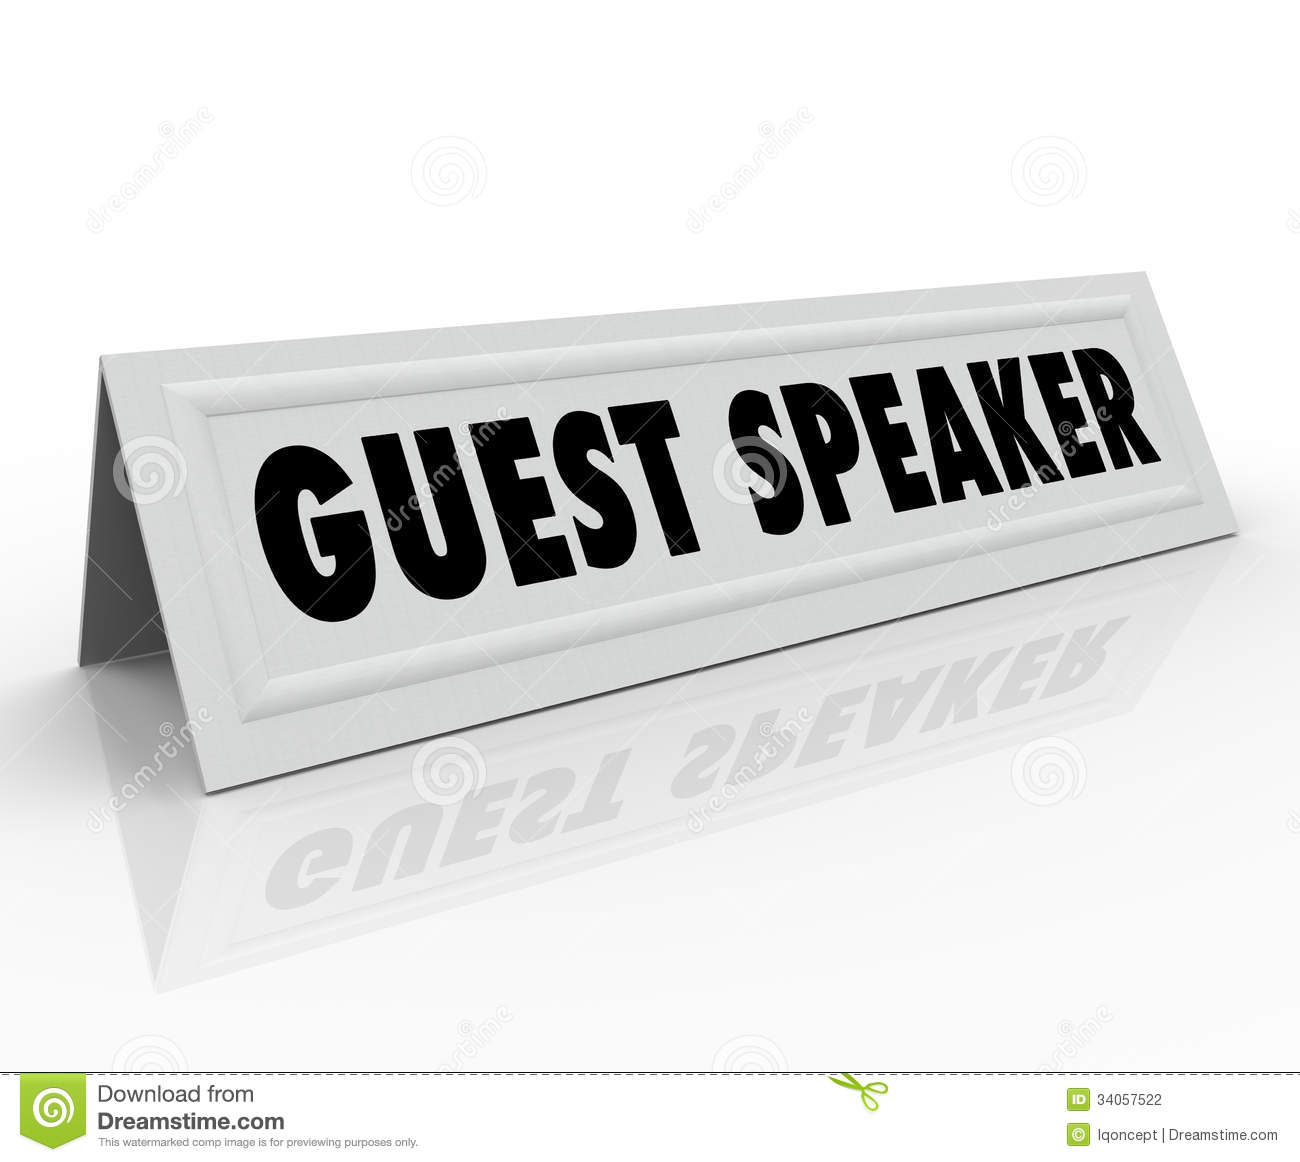 The Words Guest Speaker On A Paper Folded Tent Card To Illustrate The